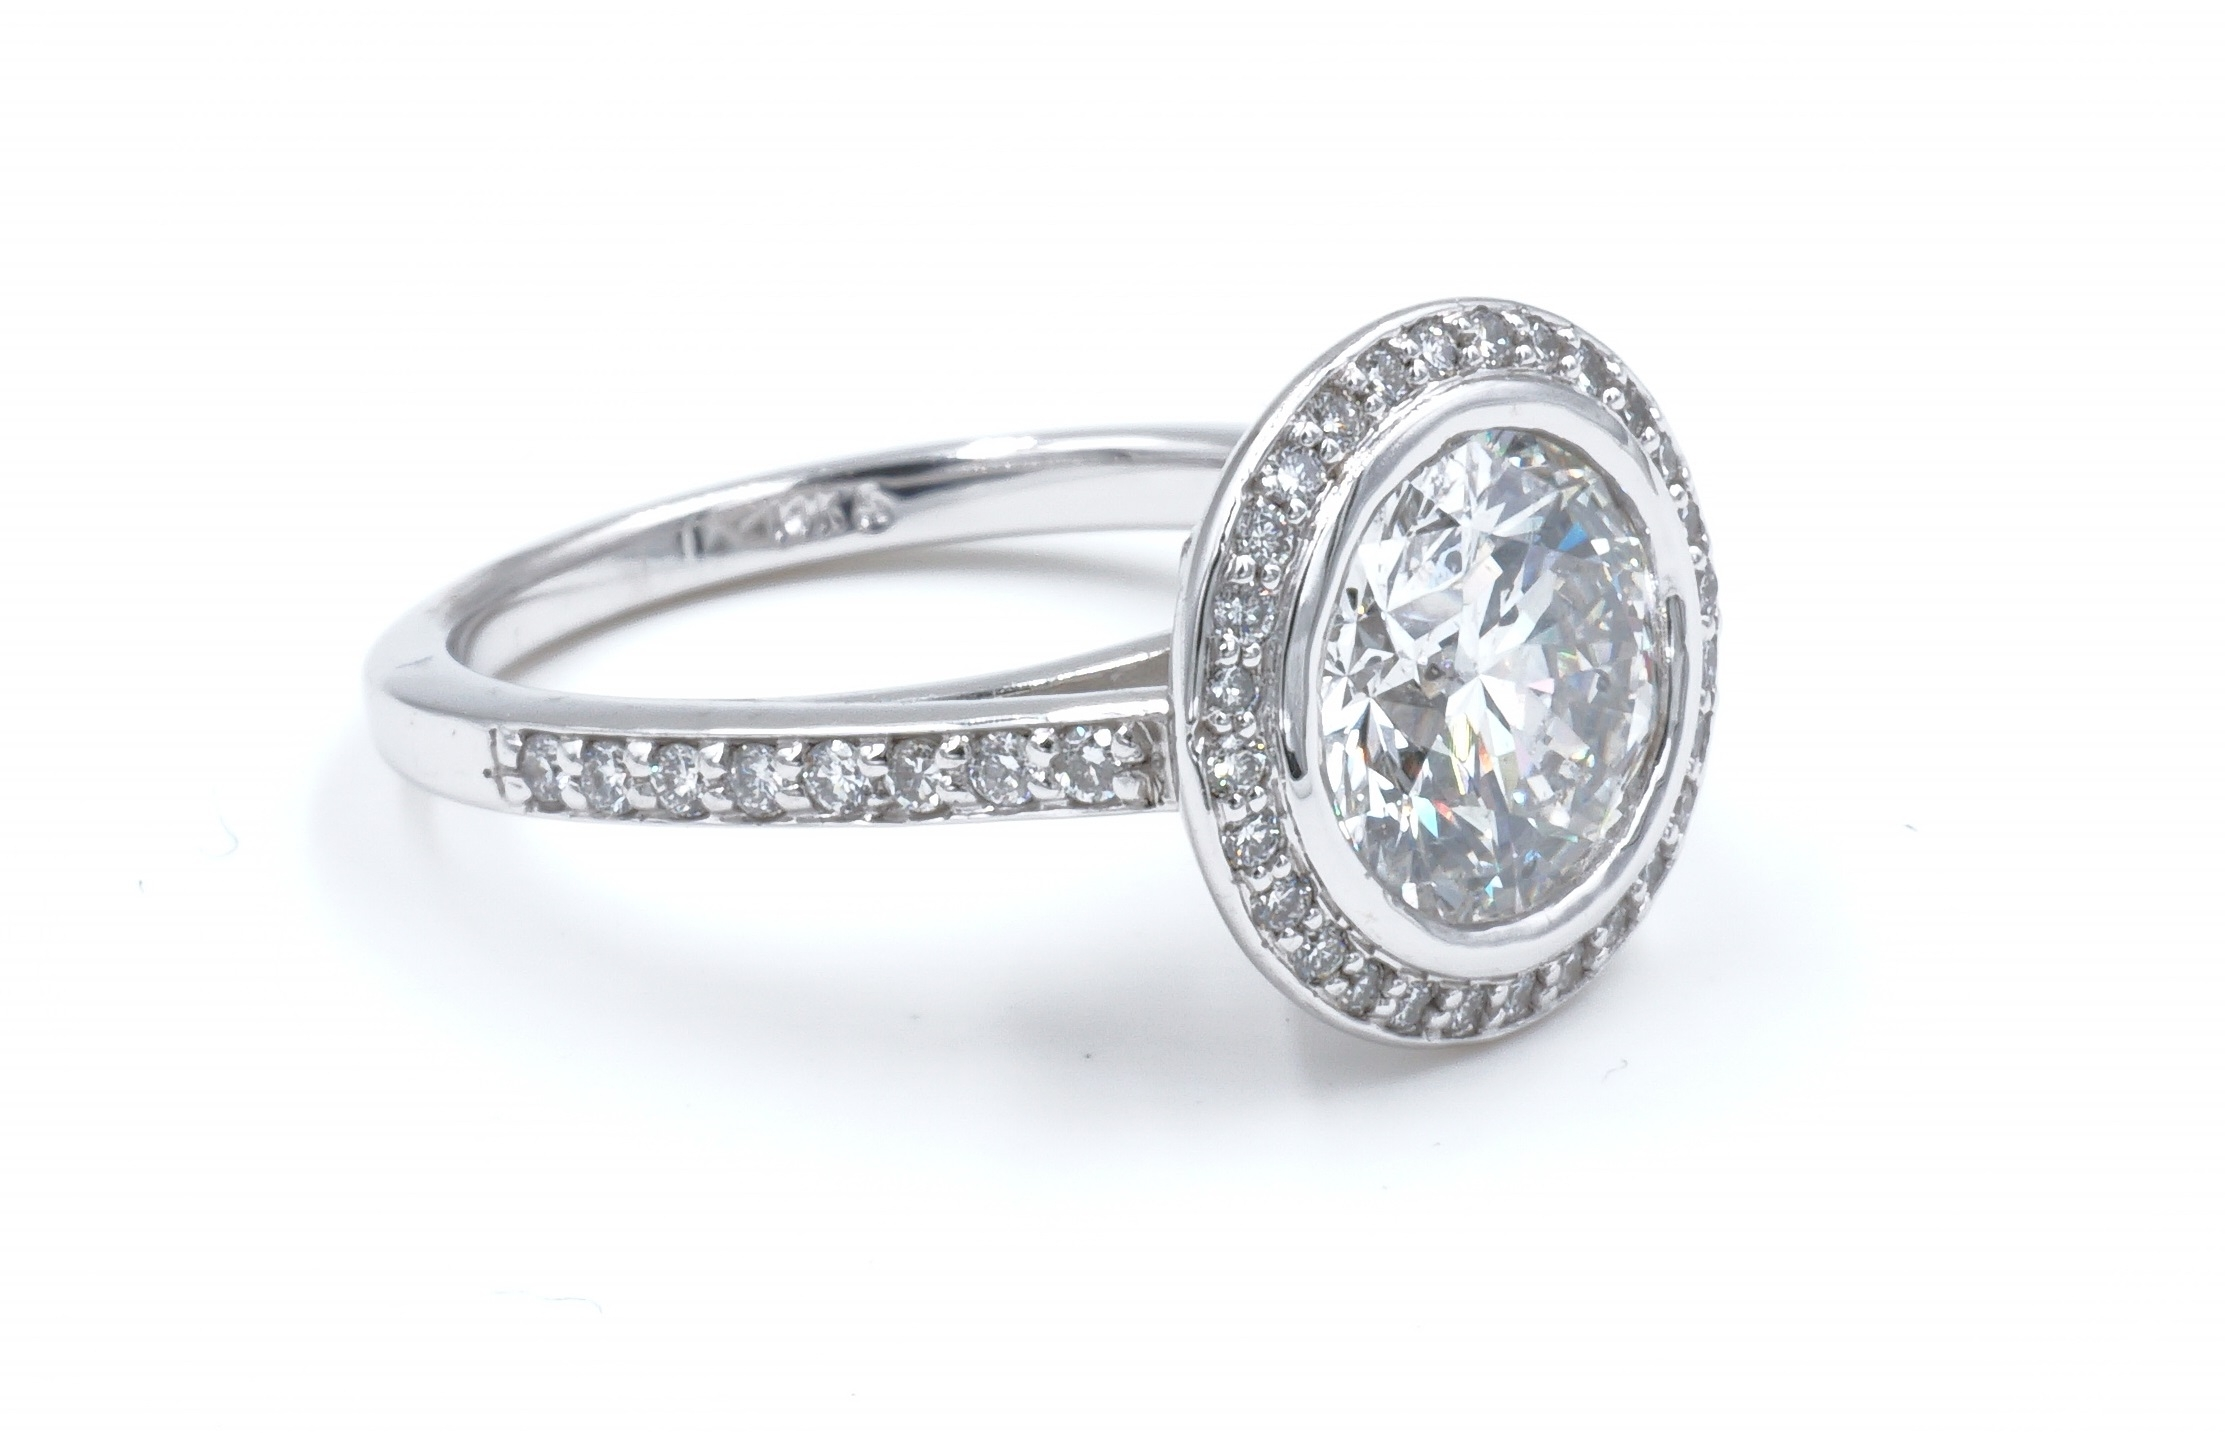 Halo Style Bezel Set Round Brilliant Cut Diamond Engagement Ring